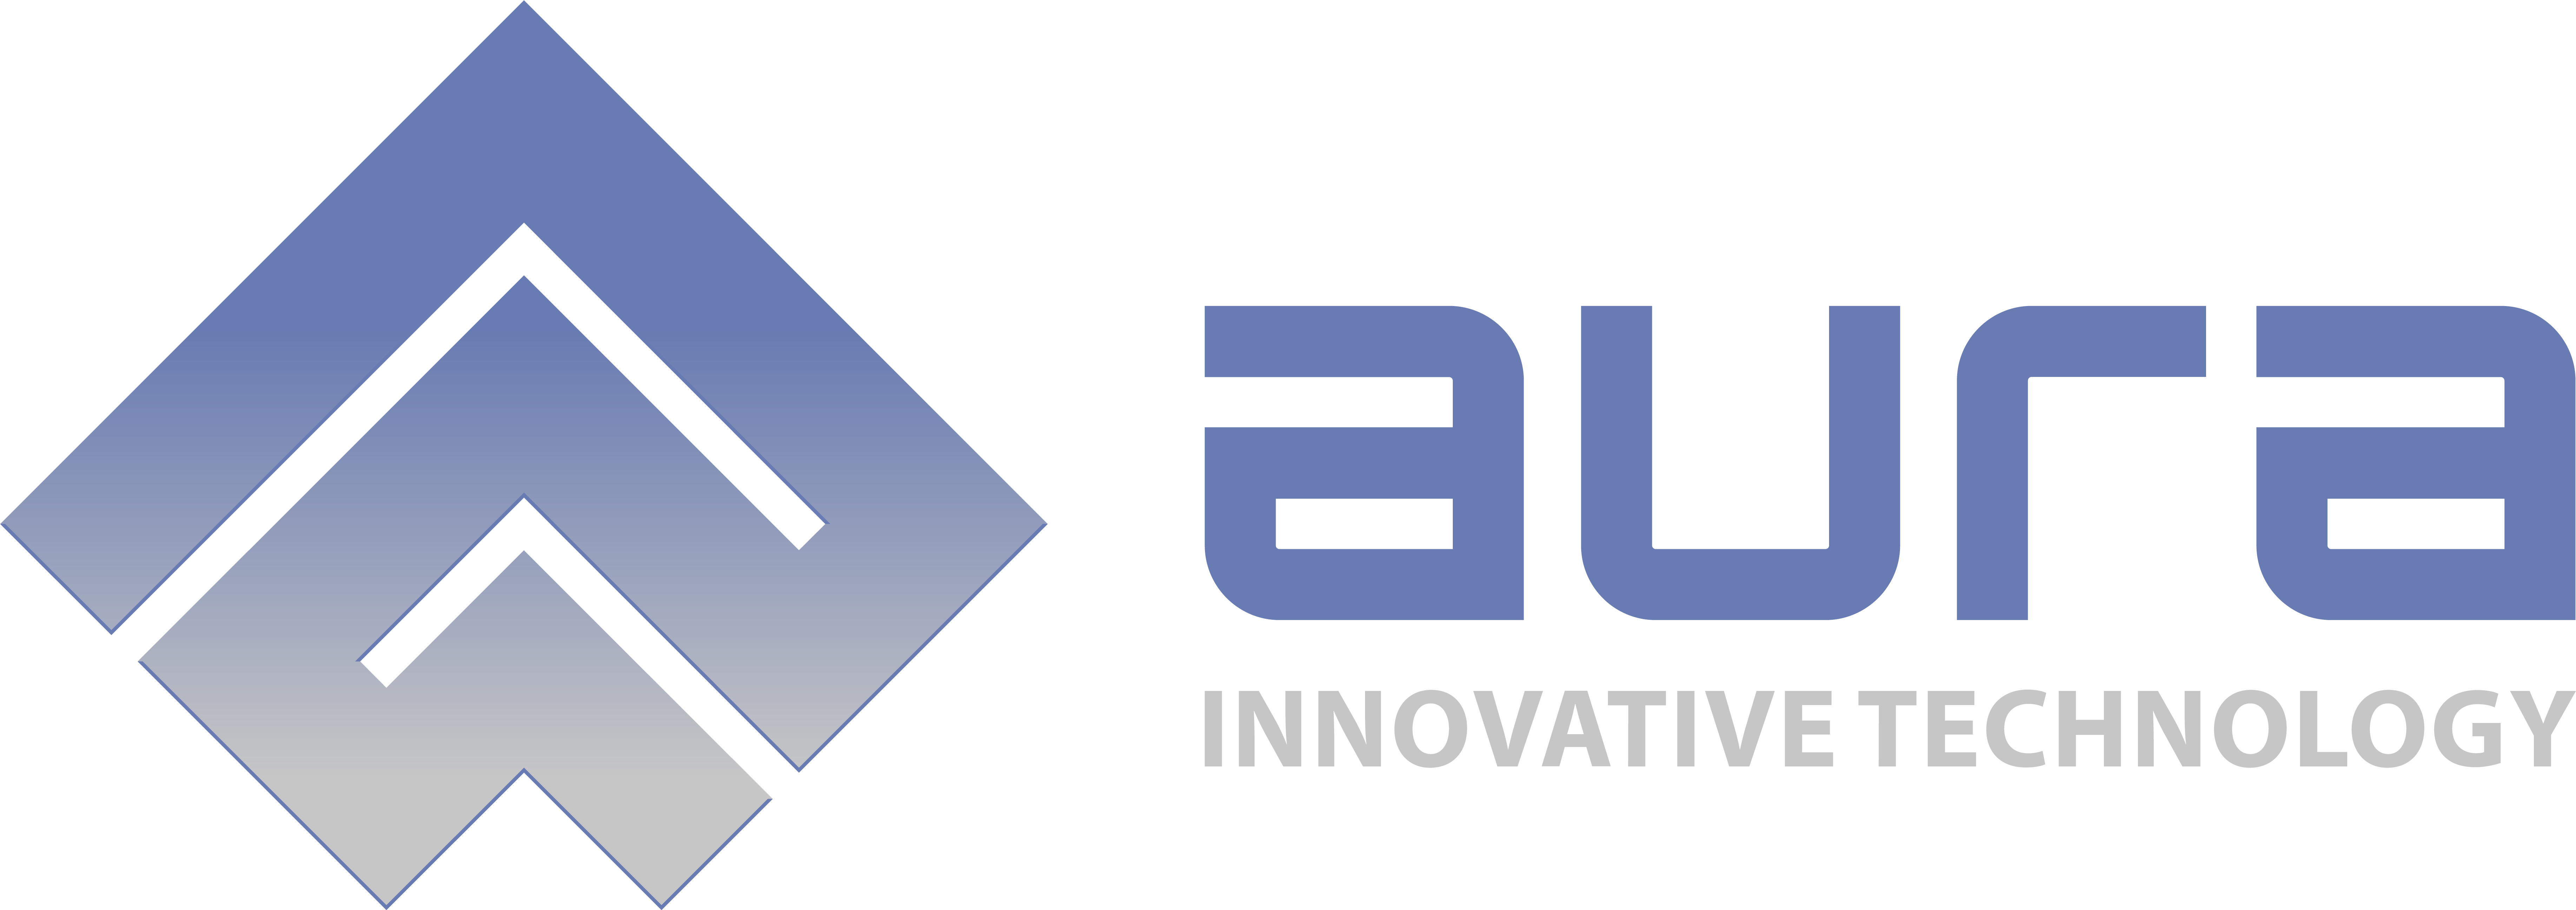 Aura Innovative Technology - New Orleans Exhibitor